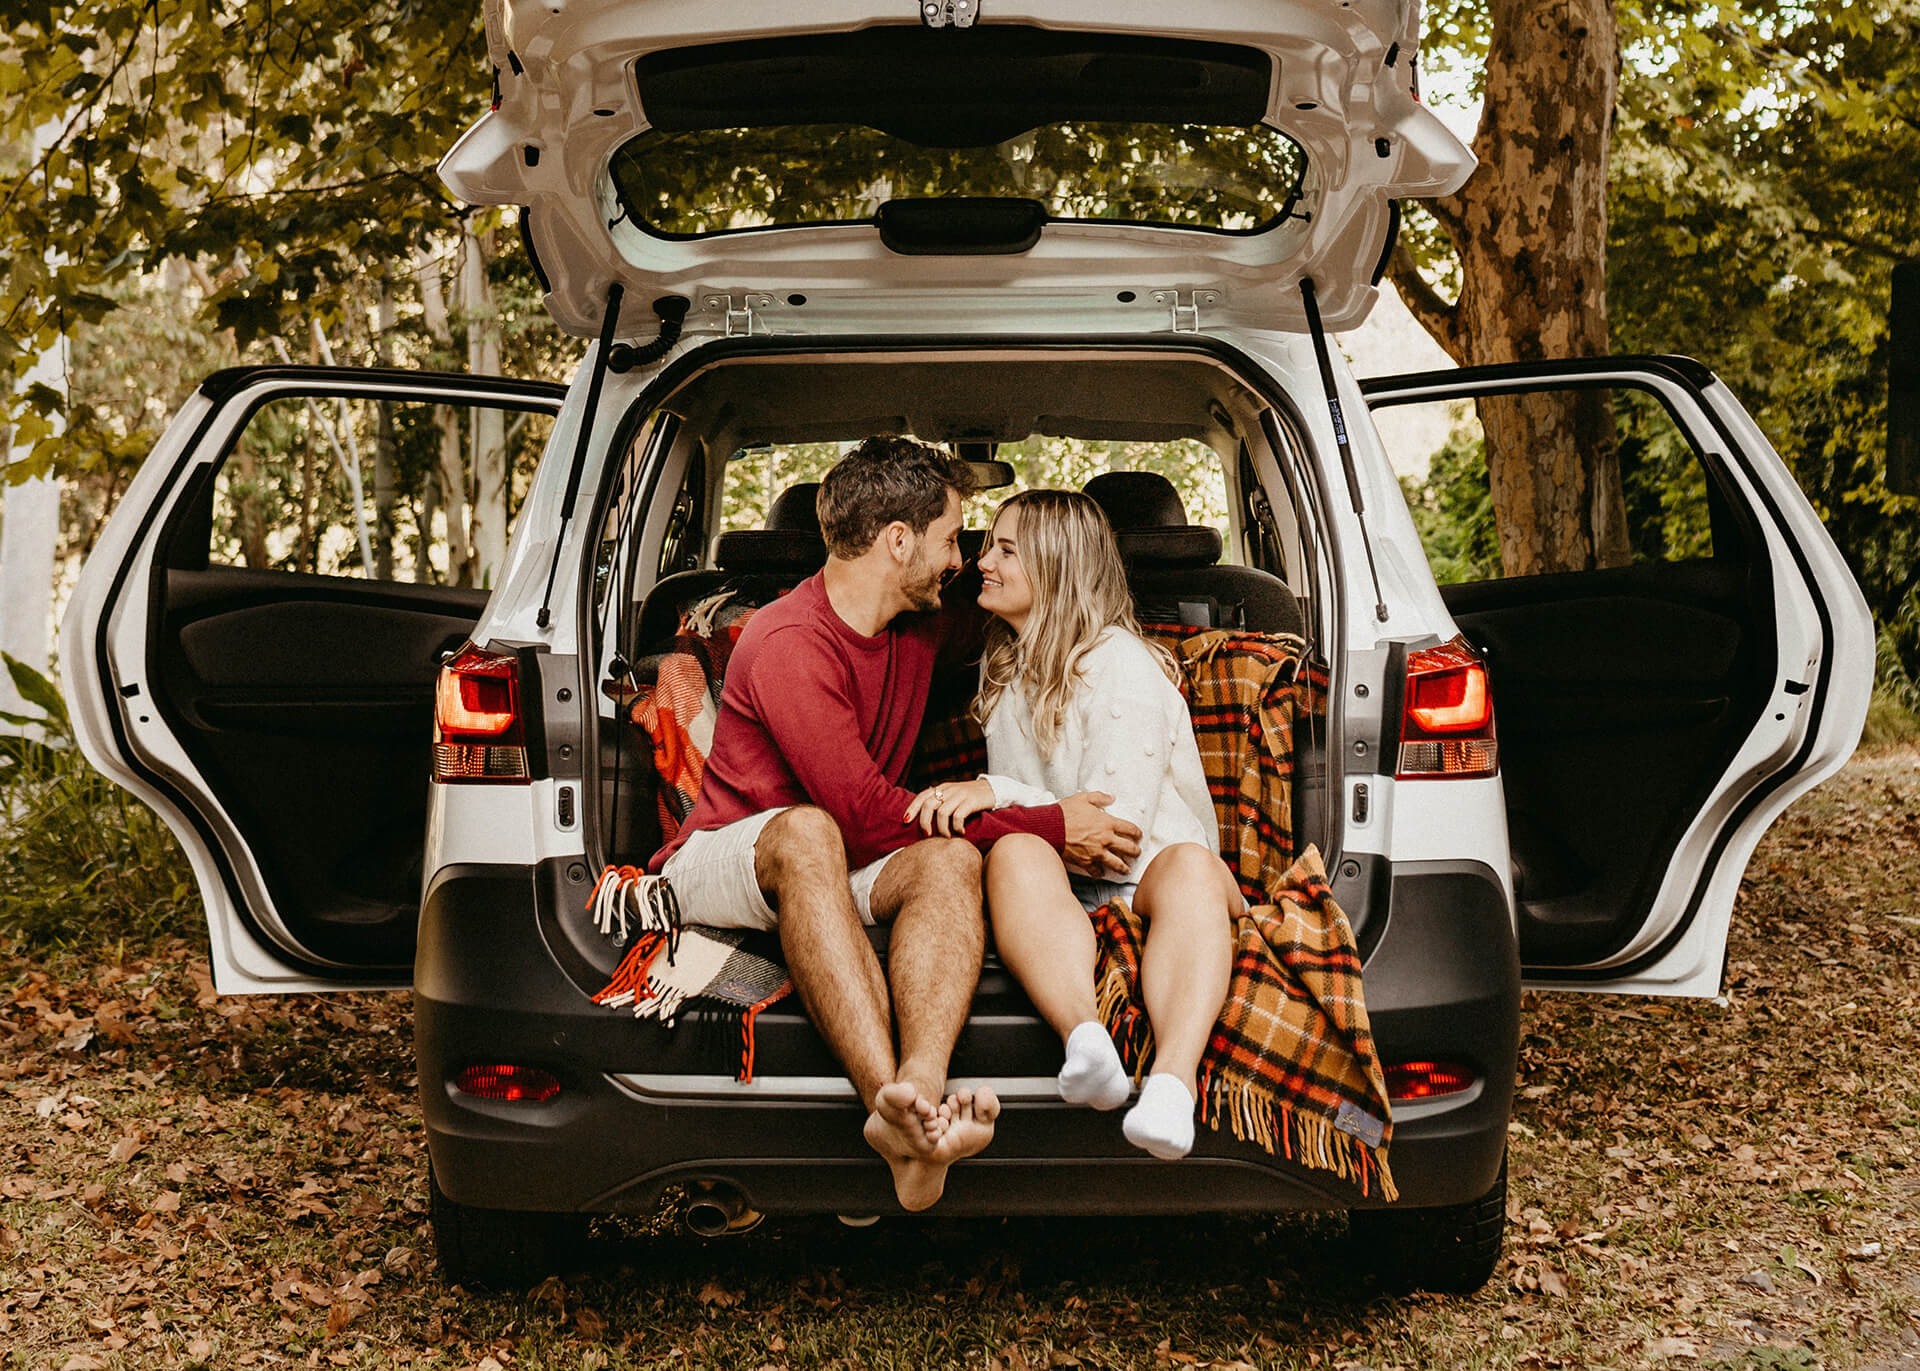 romantic picnic date ideas for a bad weather